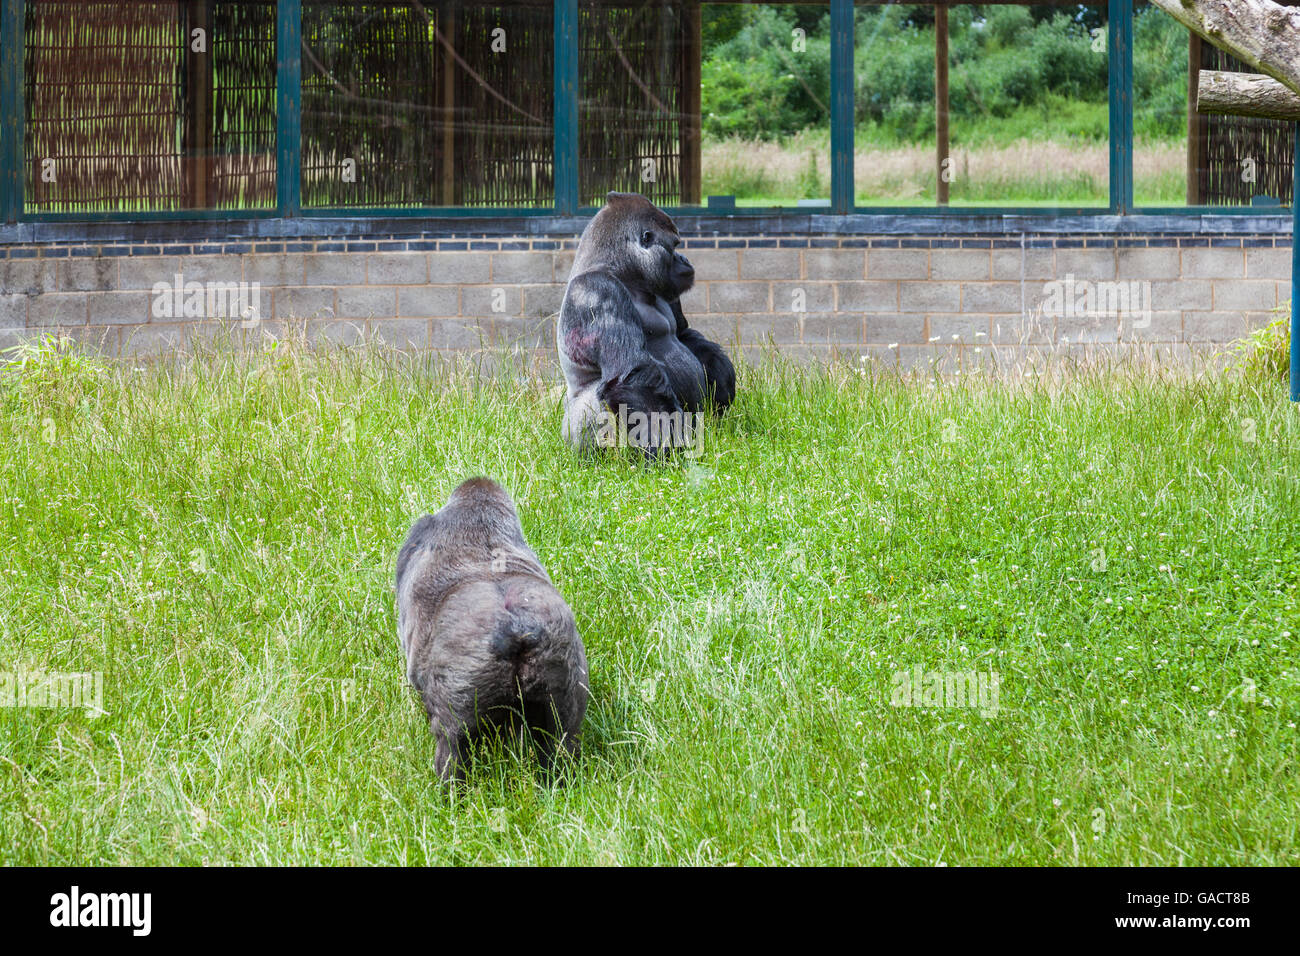 Gorillas in enclosure at Twycross Zoo, Leicestershire - Stock Image